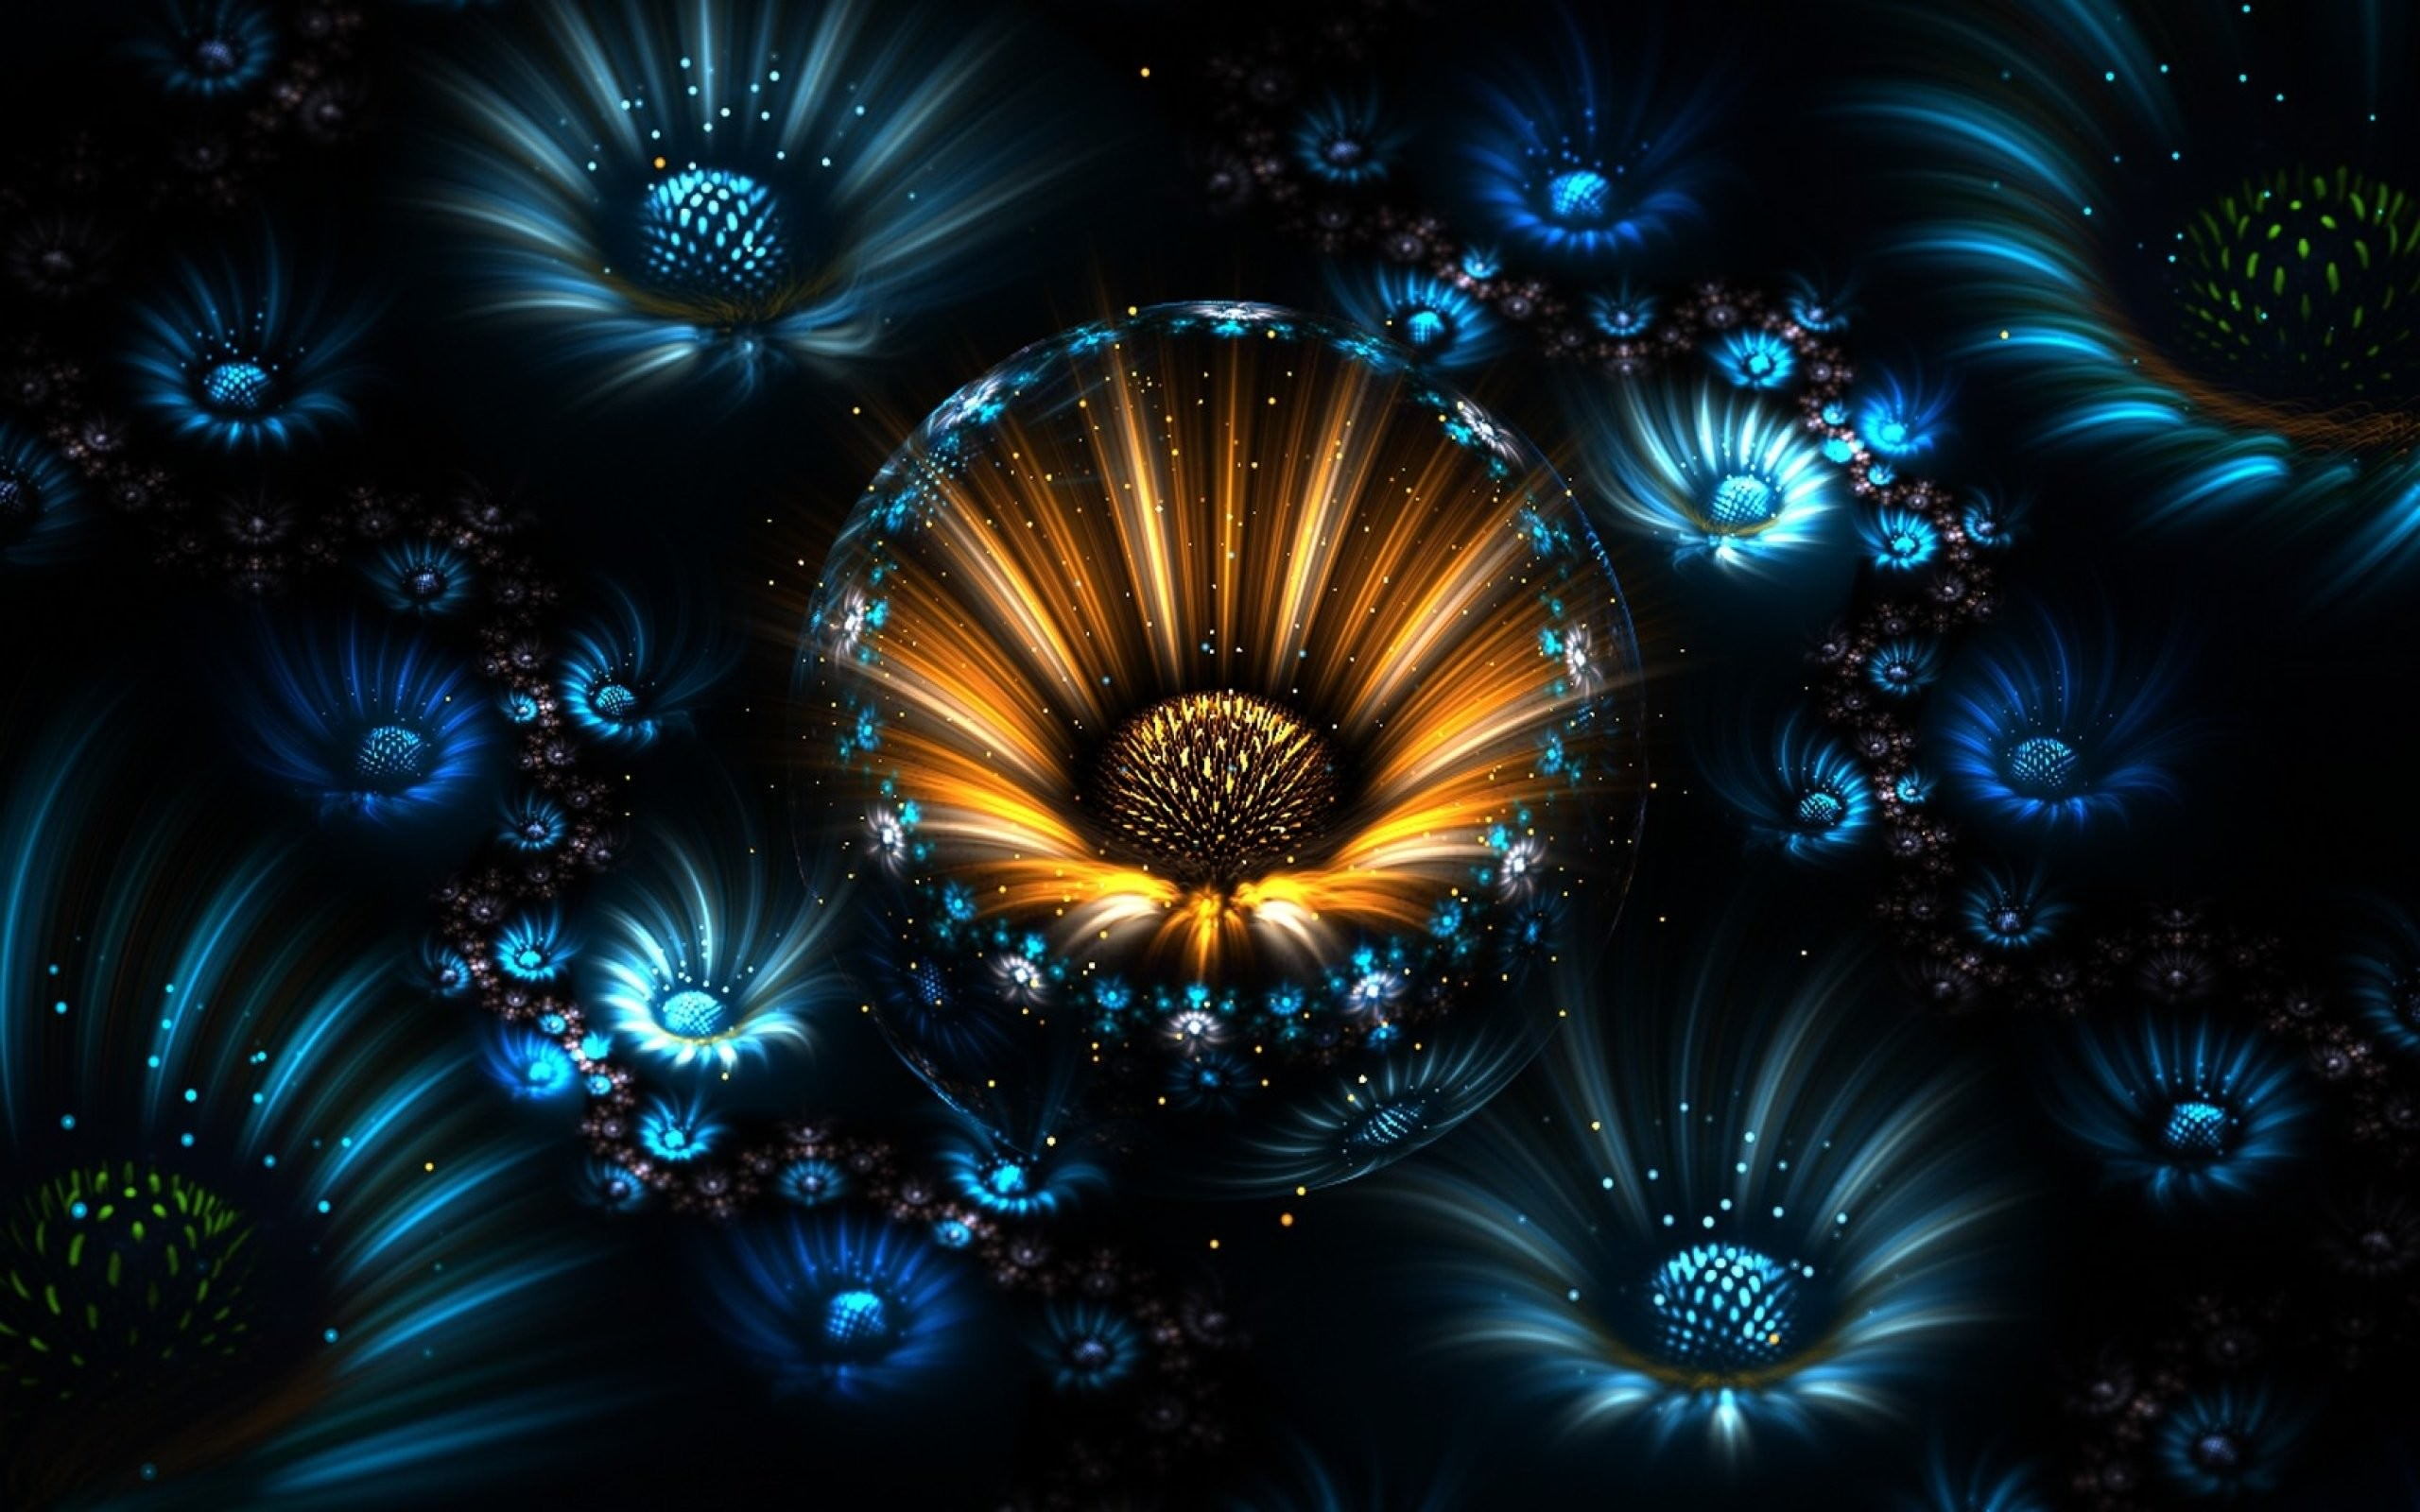 dreamy fractals abstract trippy - photo #20